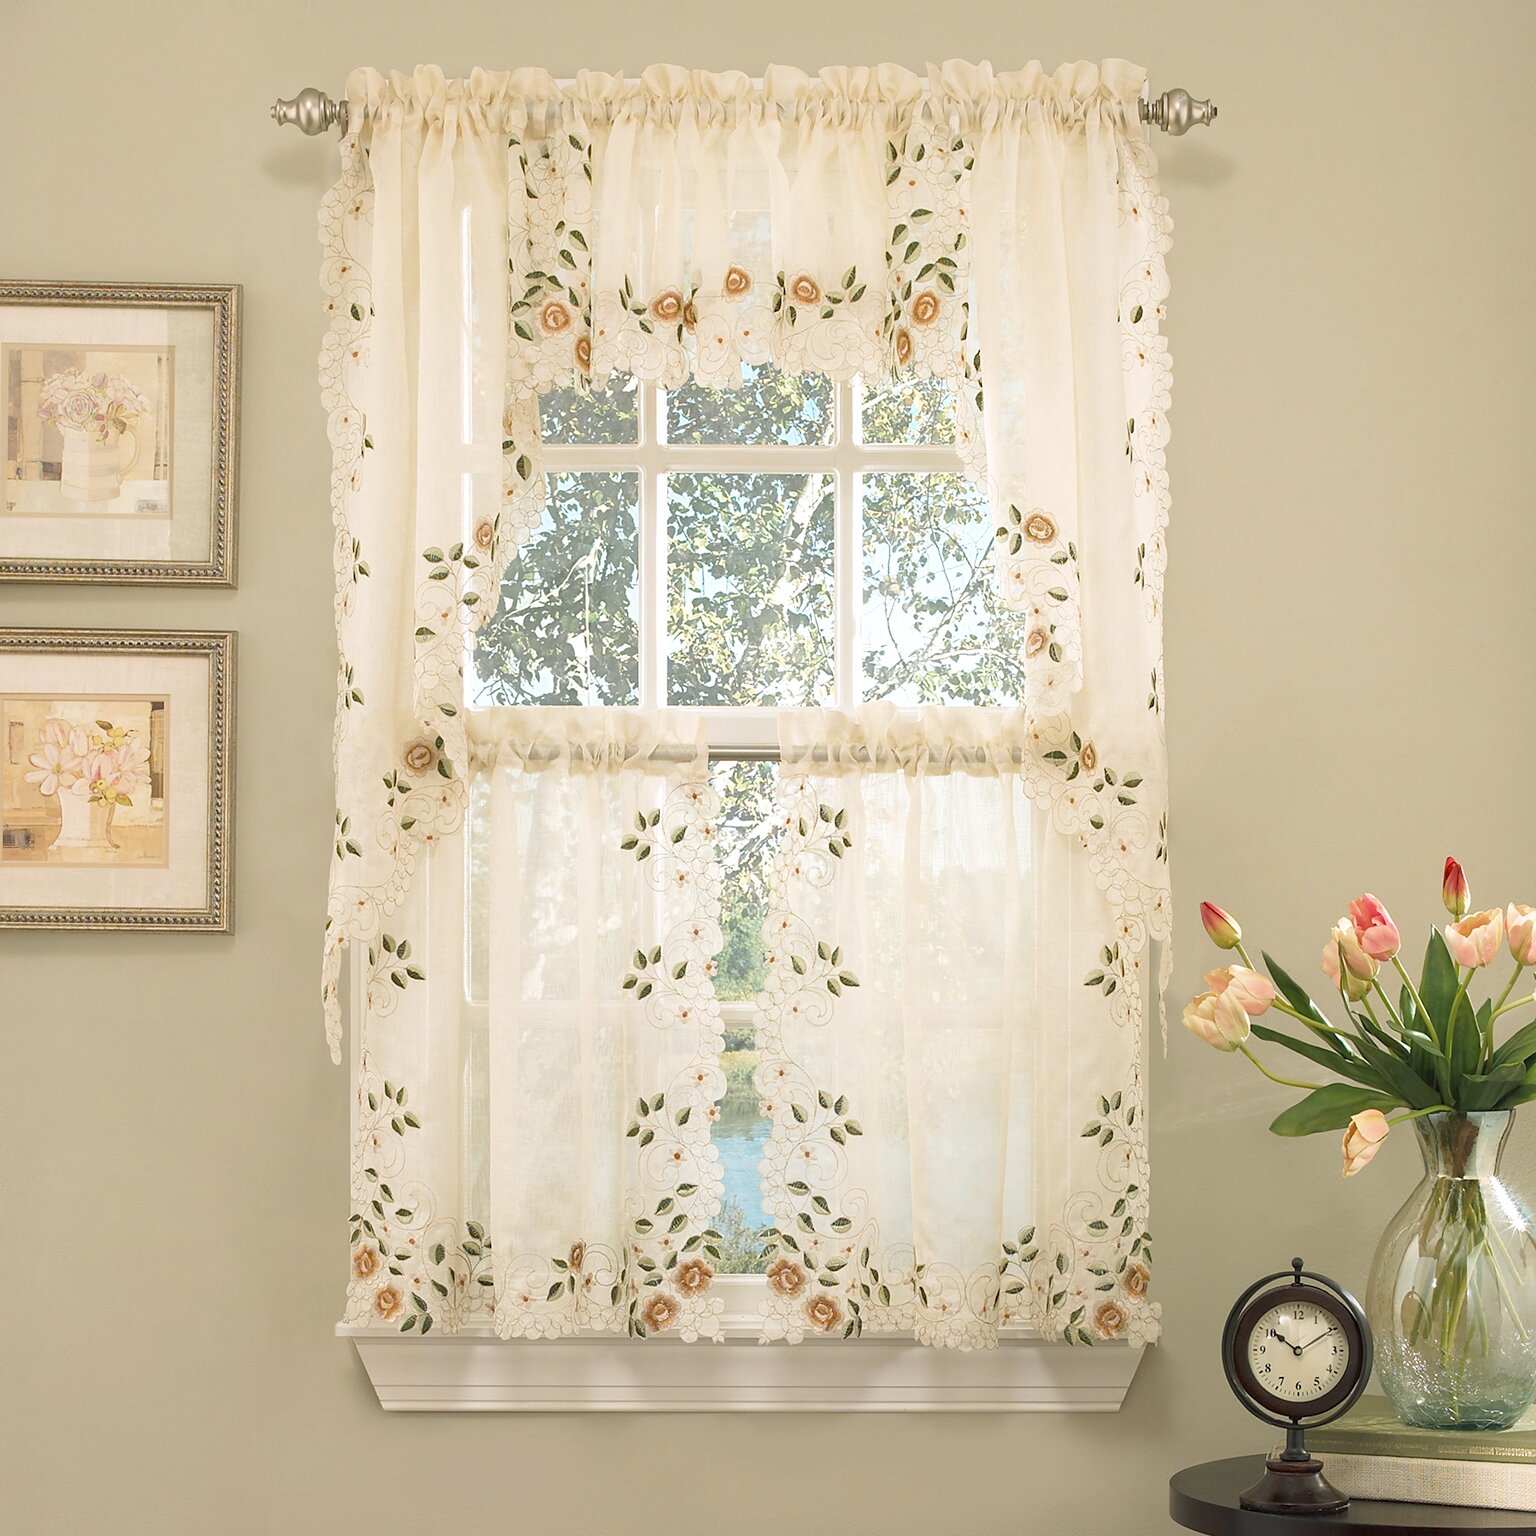 Sweet home collection old world style floral embroidered for Old world curtains and drapes